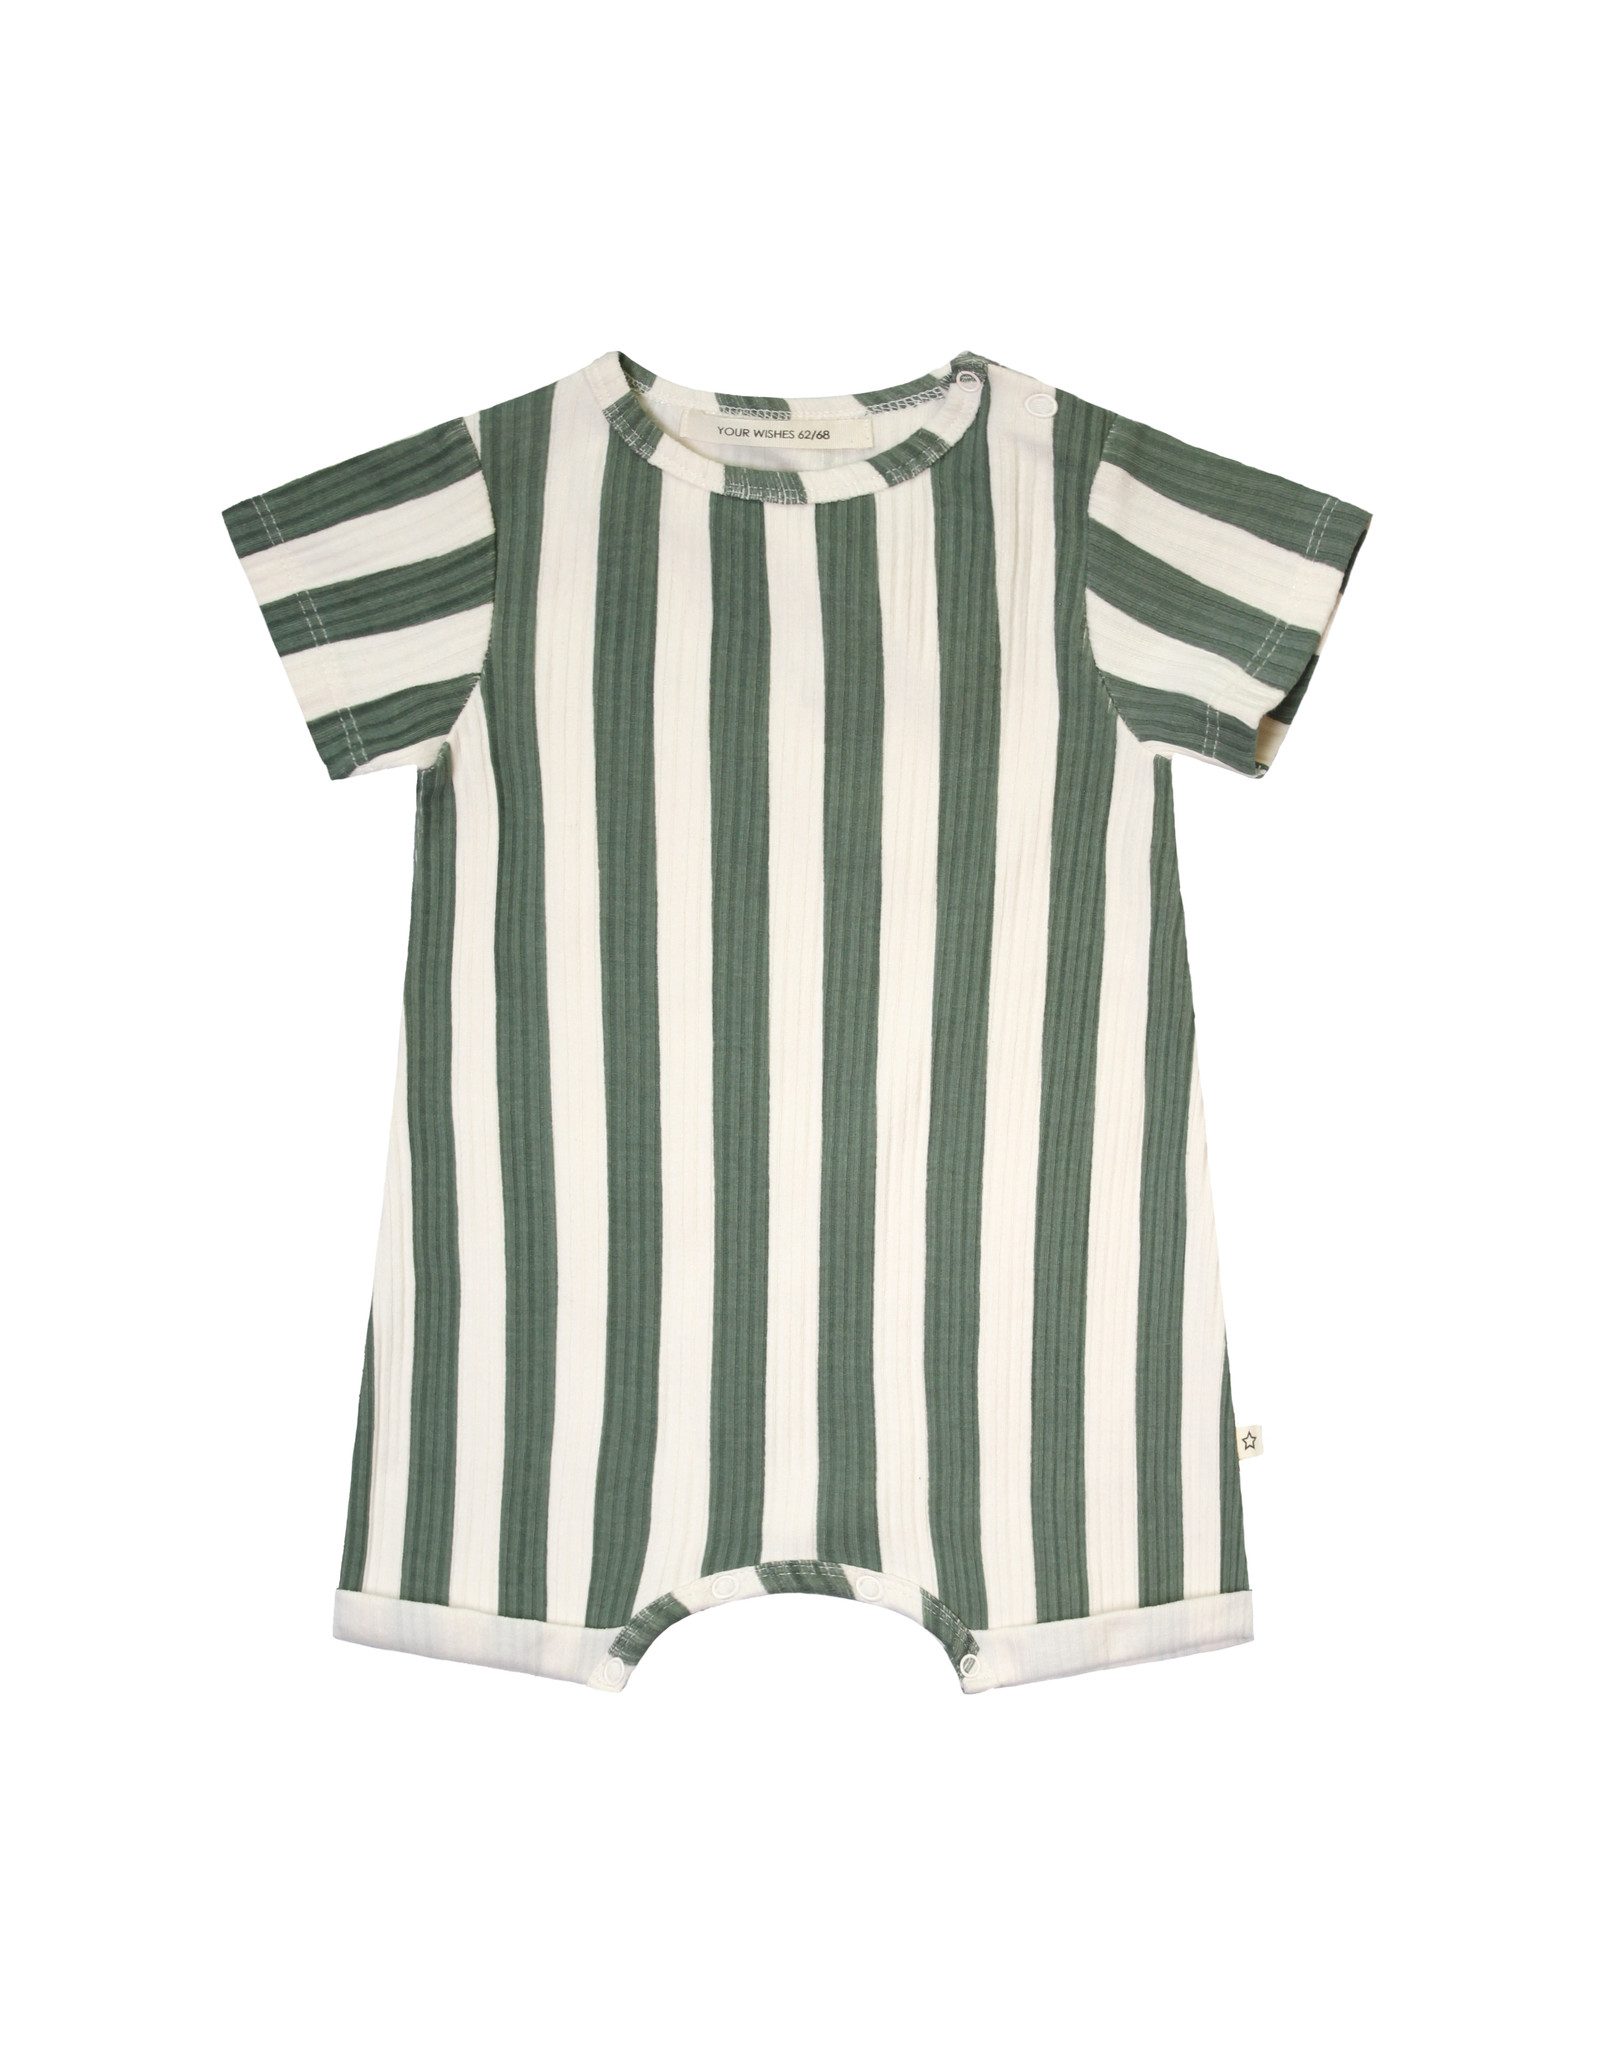 Your Wishes Your Wishes Bold Stripes Onesie Old Green